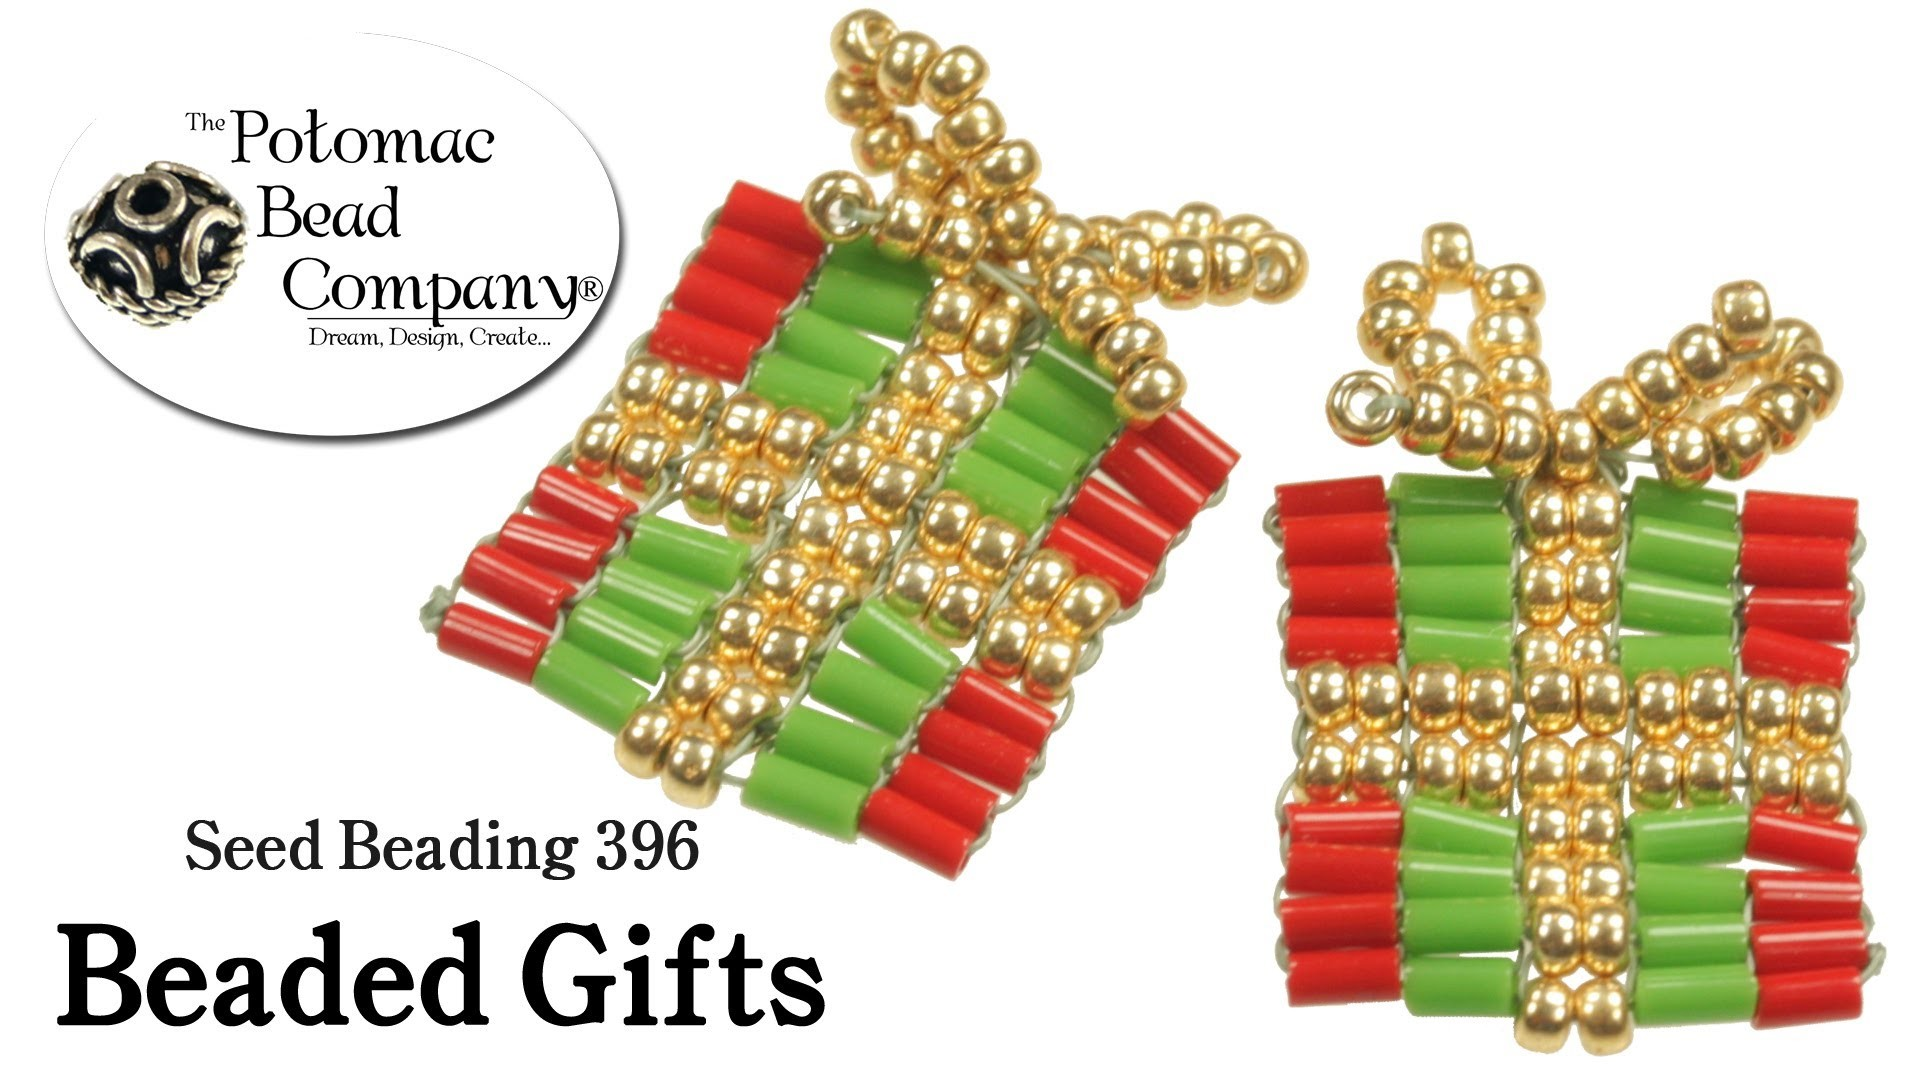 How to Make Beaded Gifts